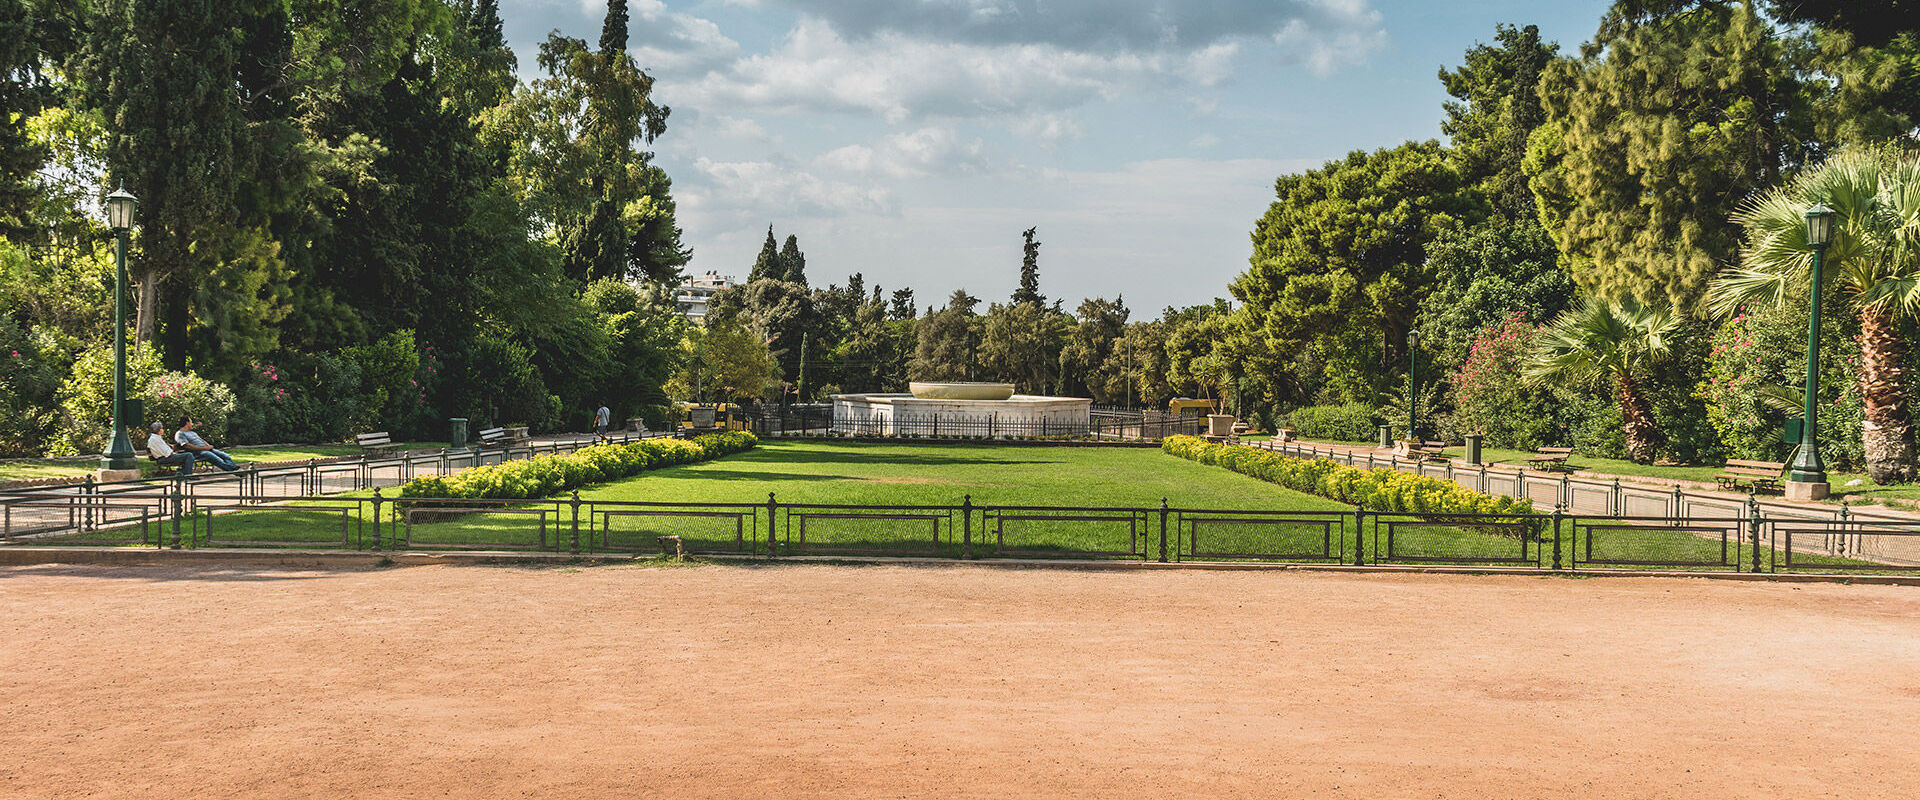 Zappeion Park, and the National Garden cover a full 160 acres